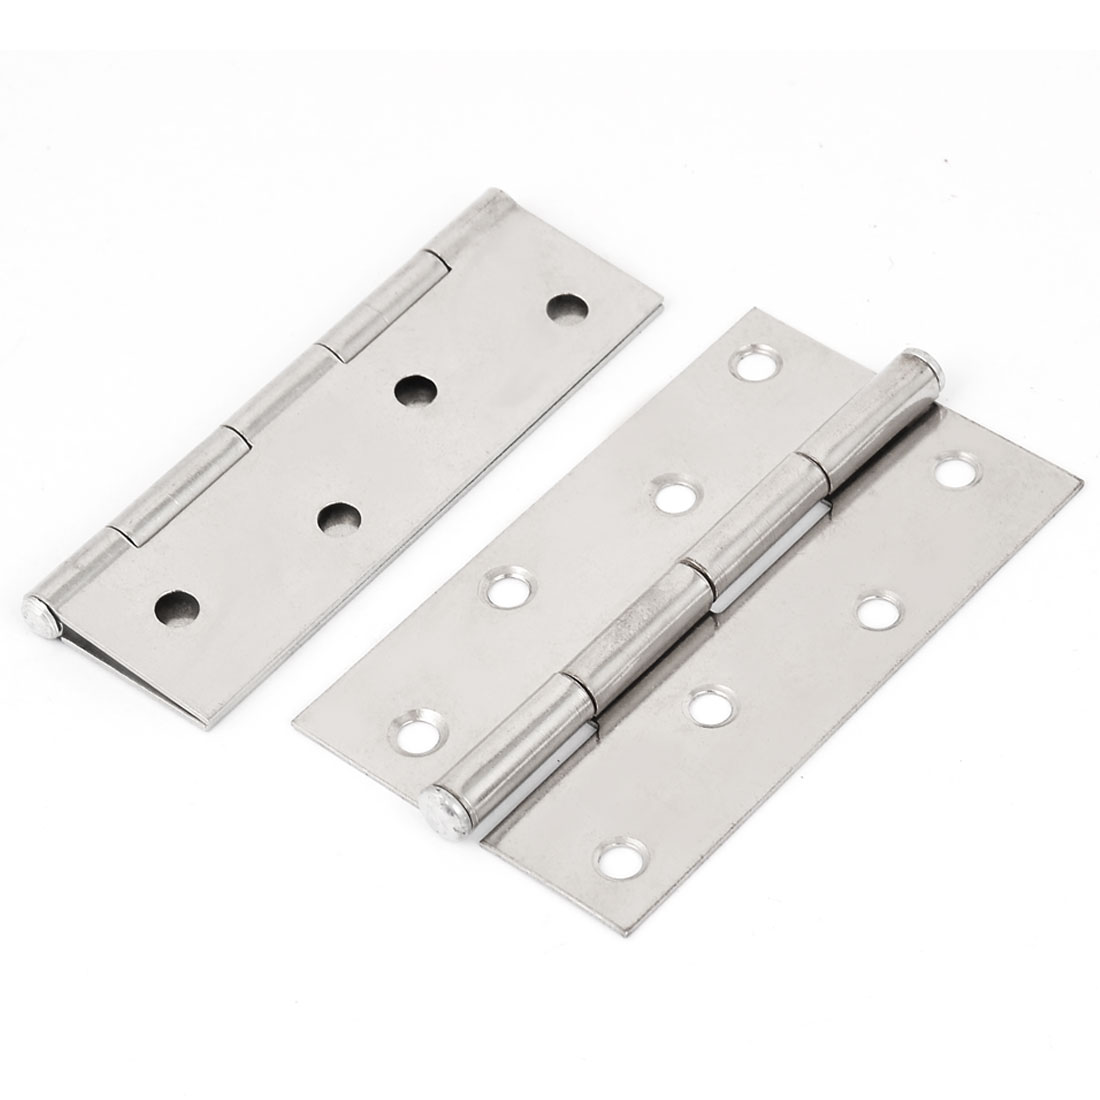 "4"" Long Stainless Steel Rotatable Rectangle Shape Door Hinges Parts 2pcs"